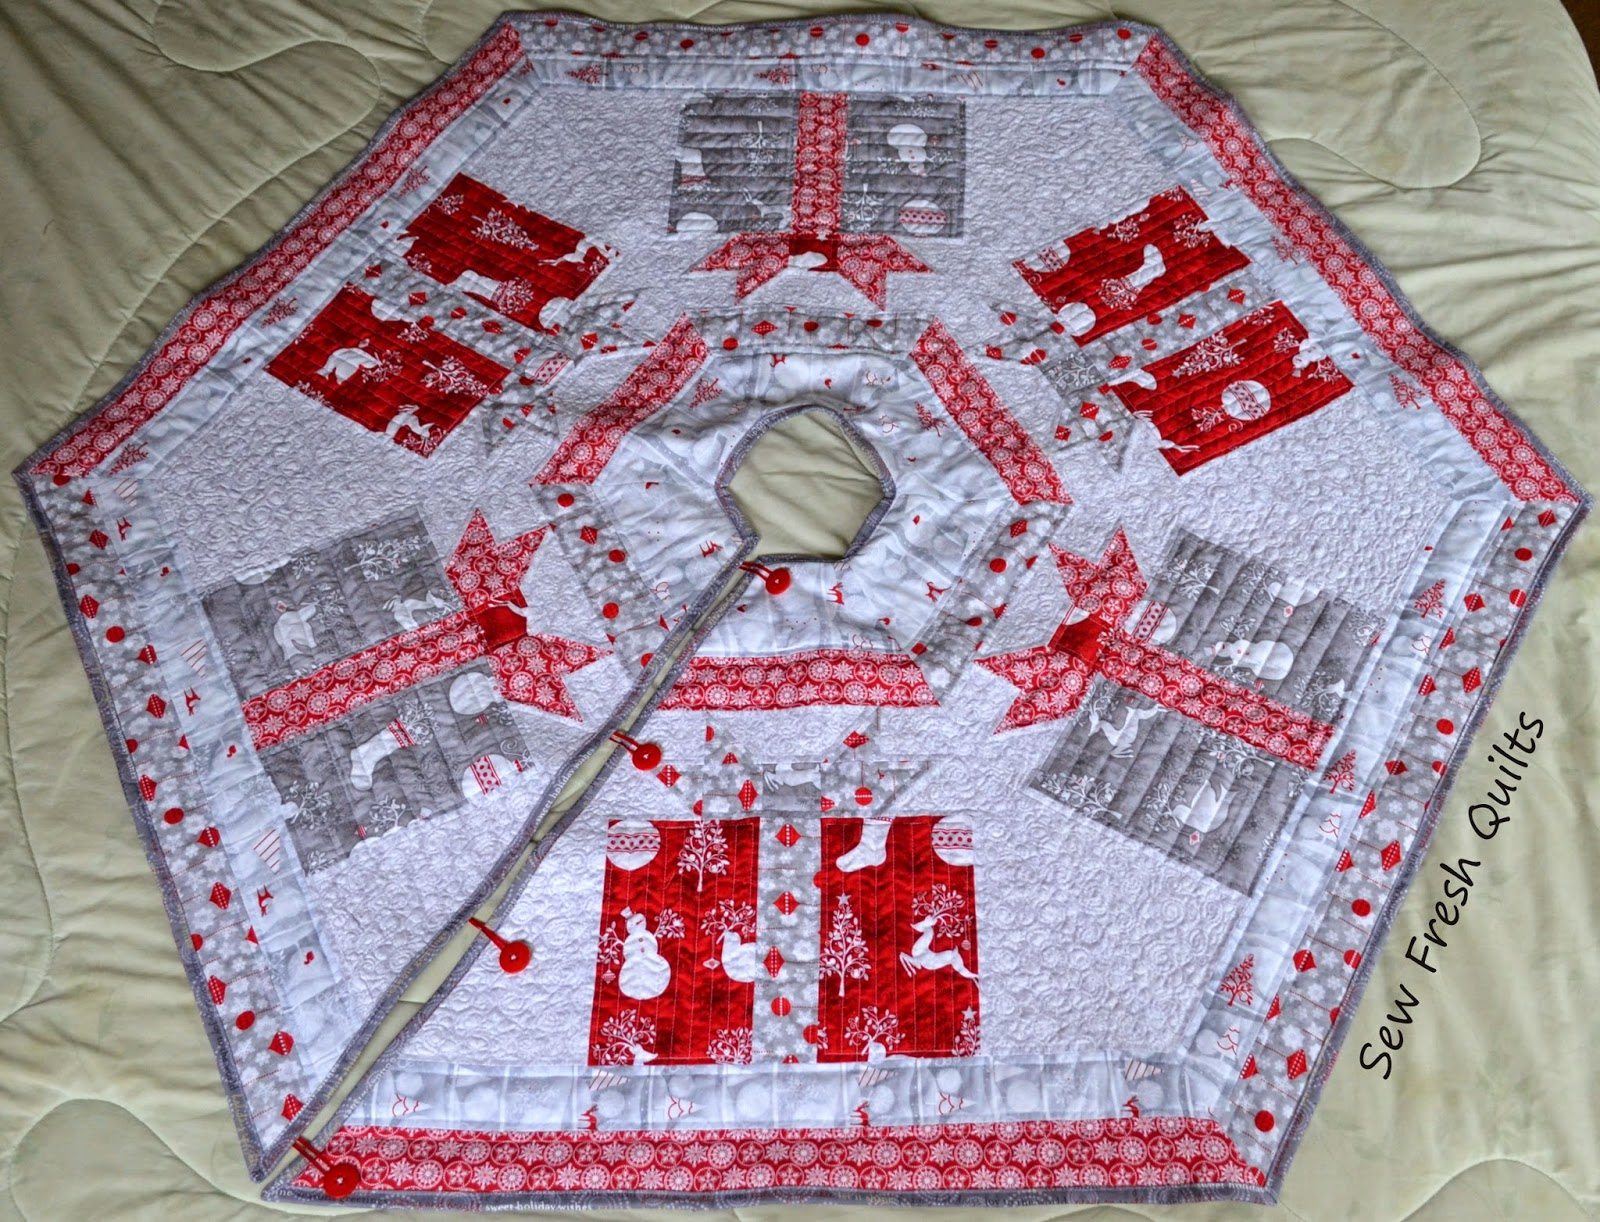 http://sewfreshquilts.blogspot.ca/2014/08/its-festive-friday-christmas-post.html